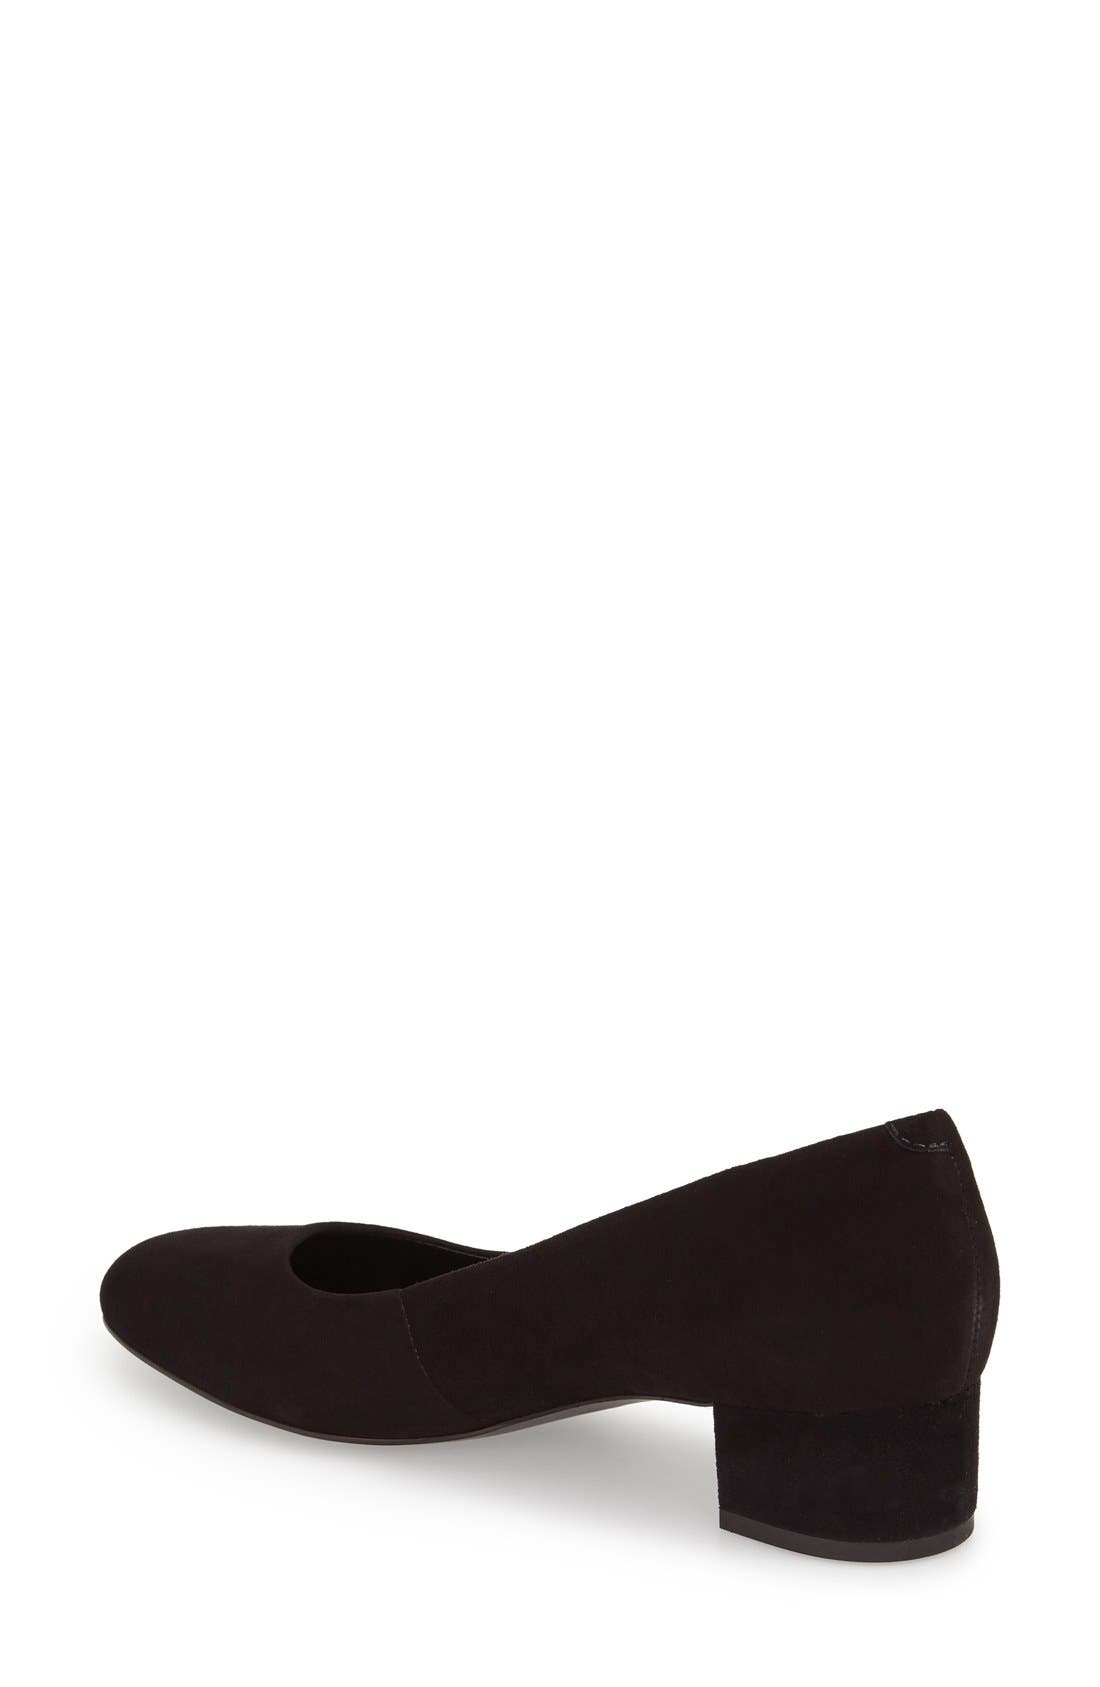 Bernardo Reggie Block Heel Pump,                             Alternate thumbnail 2, color,                             001